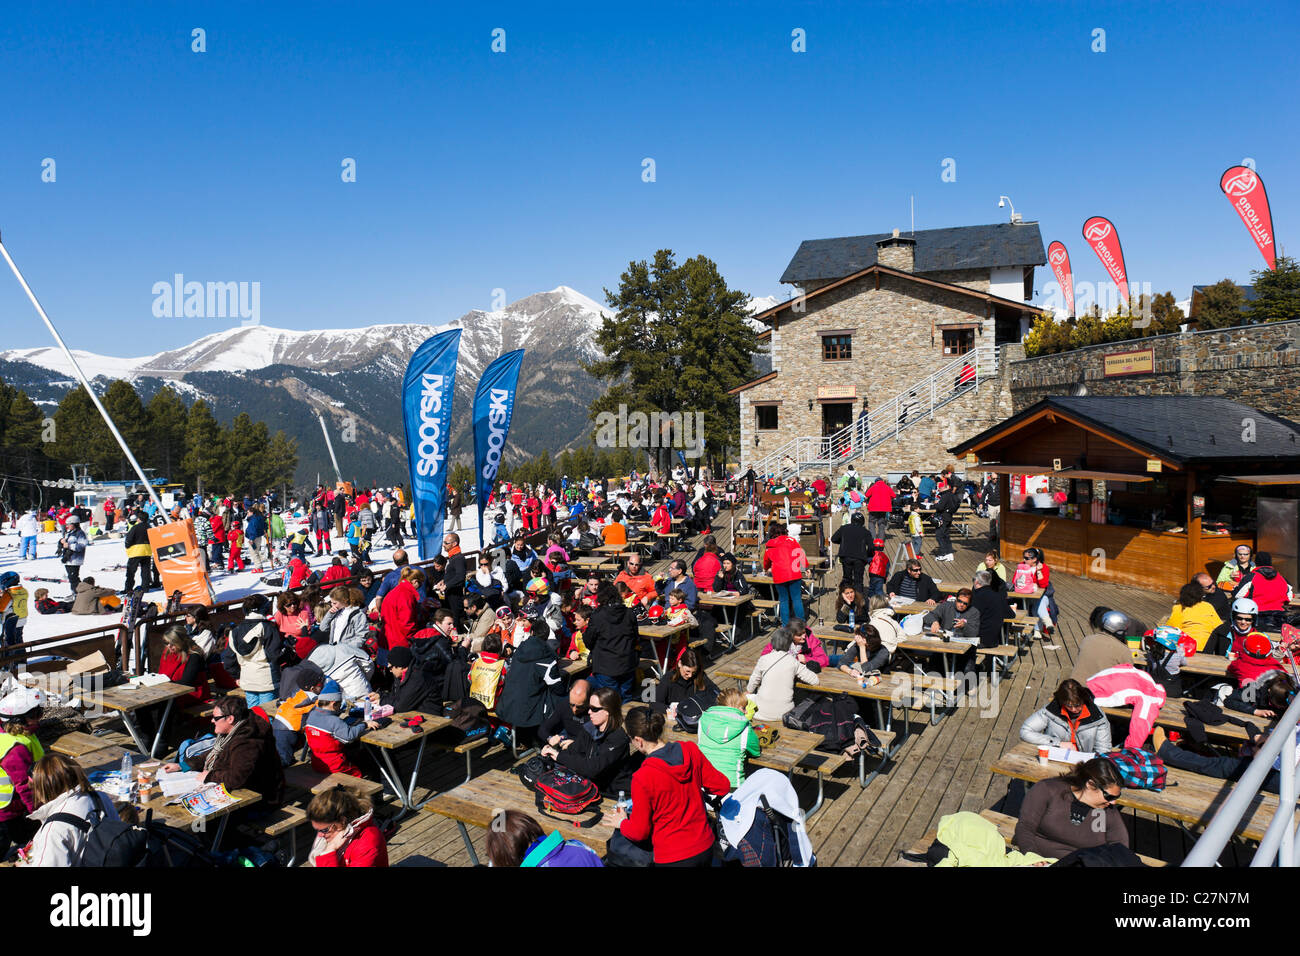 Terrace of a restaurant a the bottom of the slopes in Pal, Vallnord Ski Area, Andorra - Stock Image